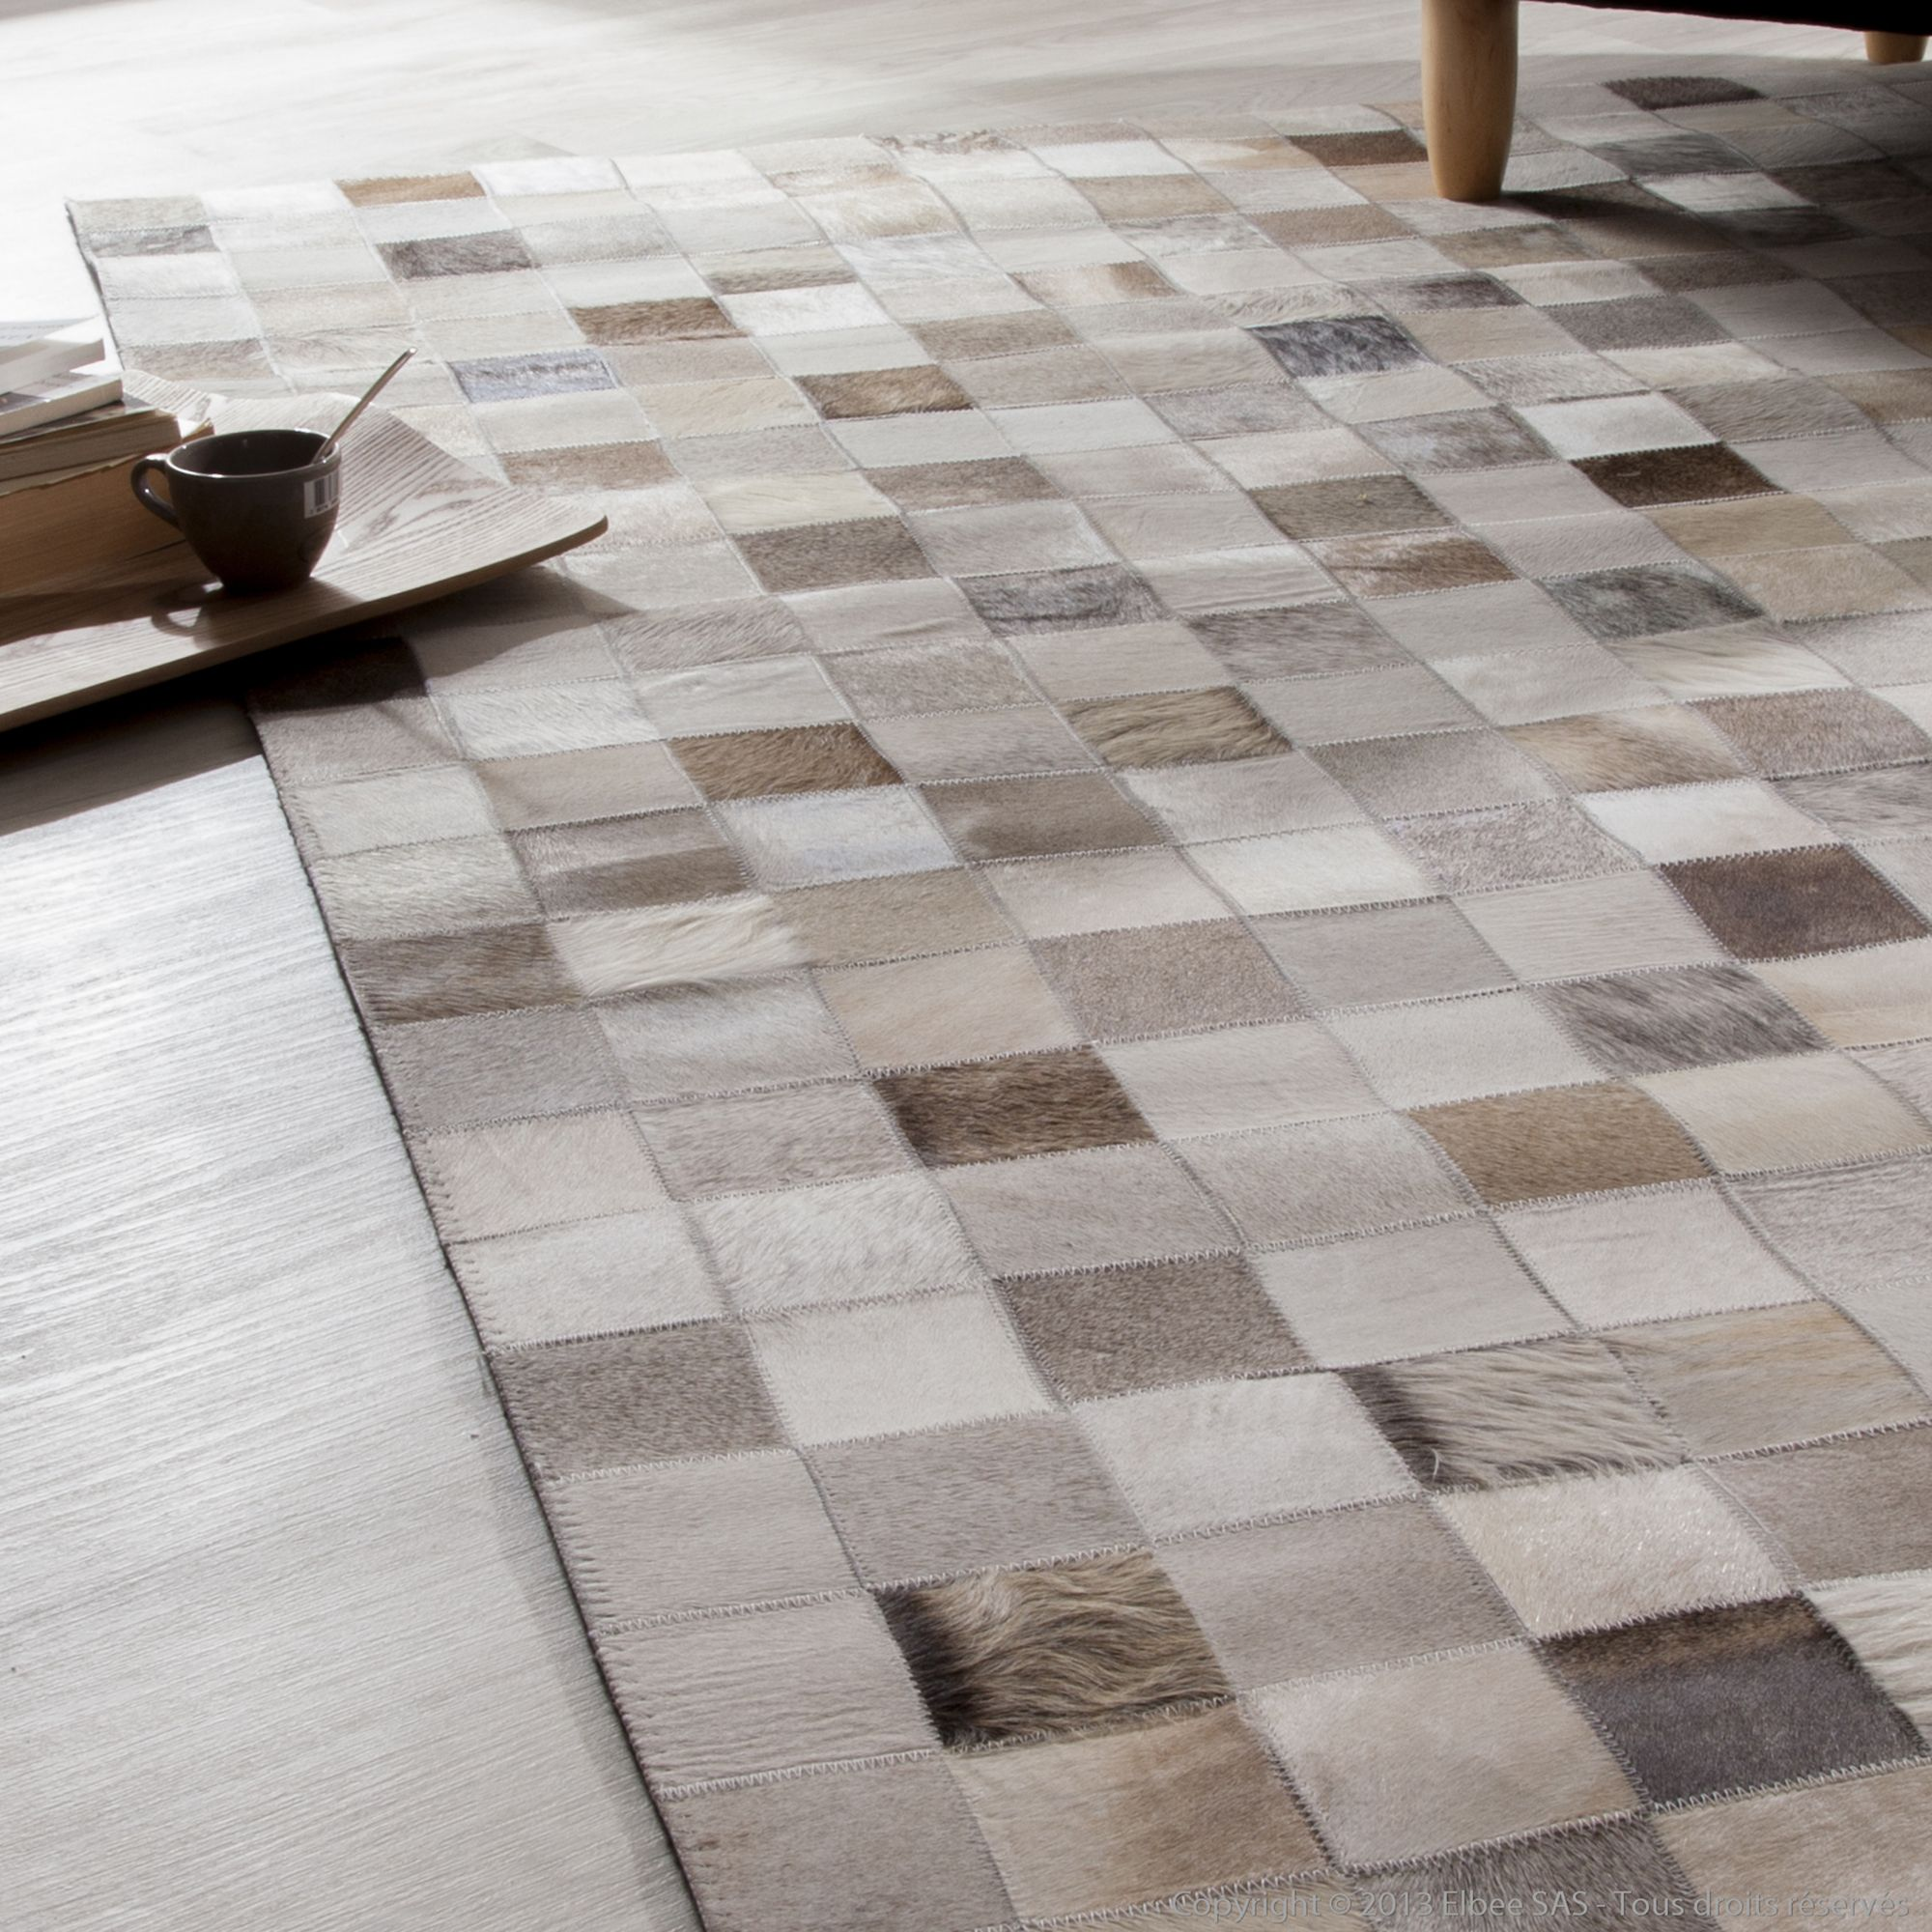 tapis 100 cuir carreaux beige effet patchwork modern akhal maison pinterest patchwork. Black Bedroom Furniture Sets. Home Design Ideas